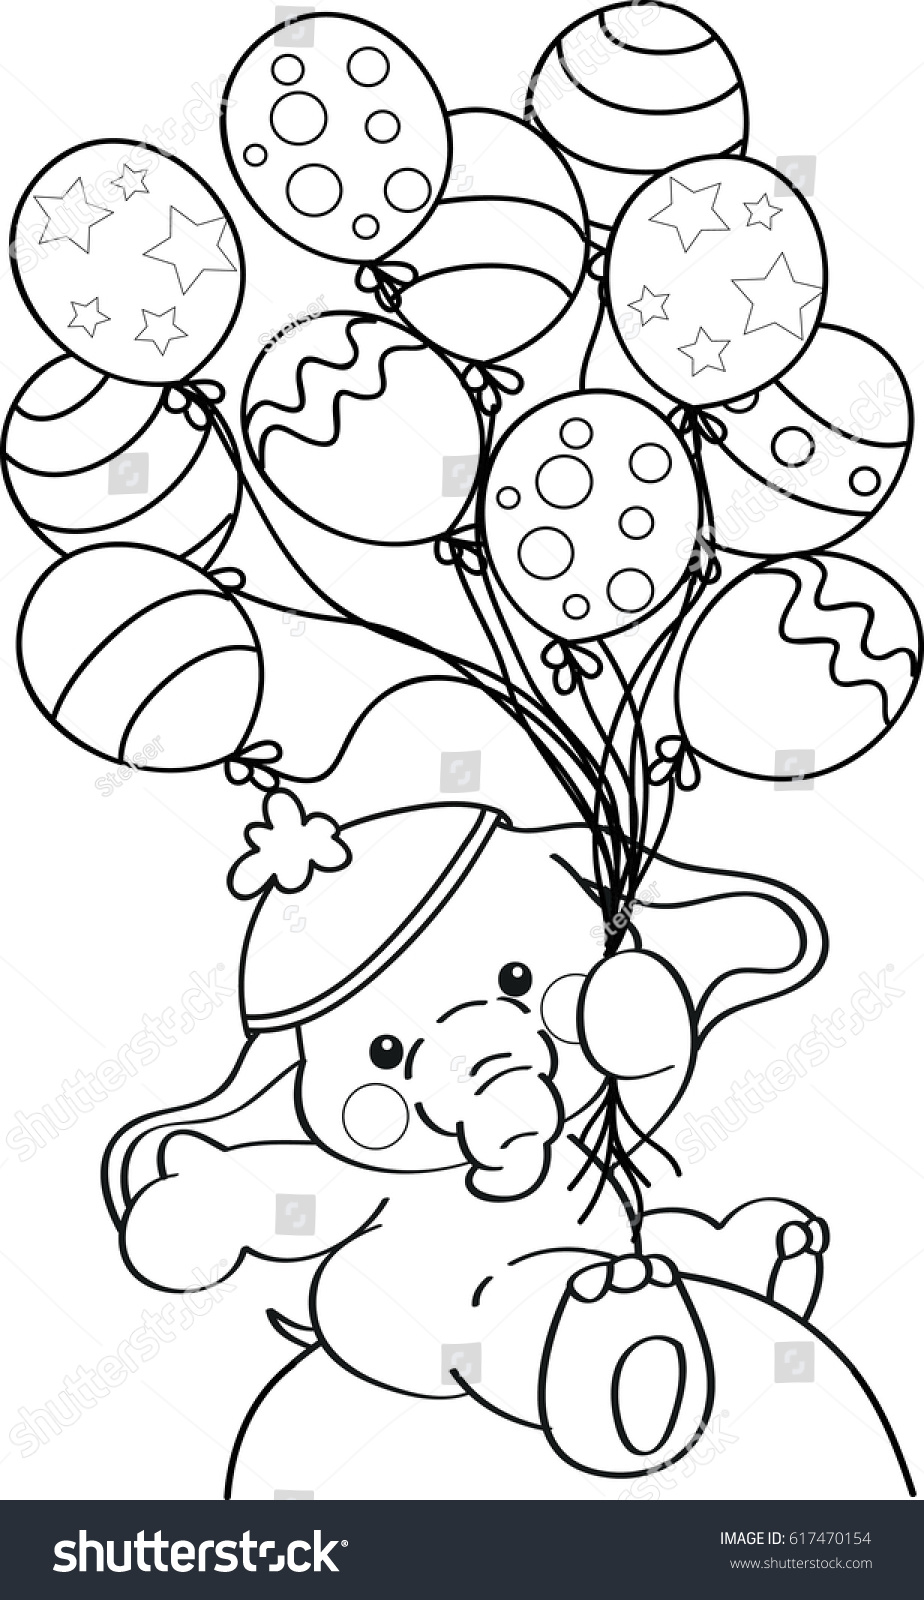 Coloring Page Outline Cartoon Baby Elephant Stock Vector 617470154 ...